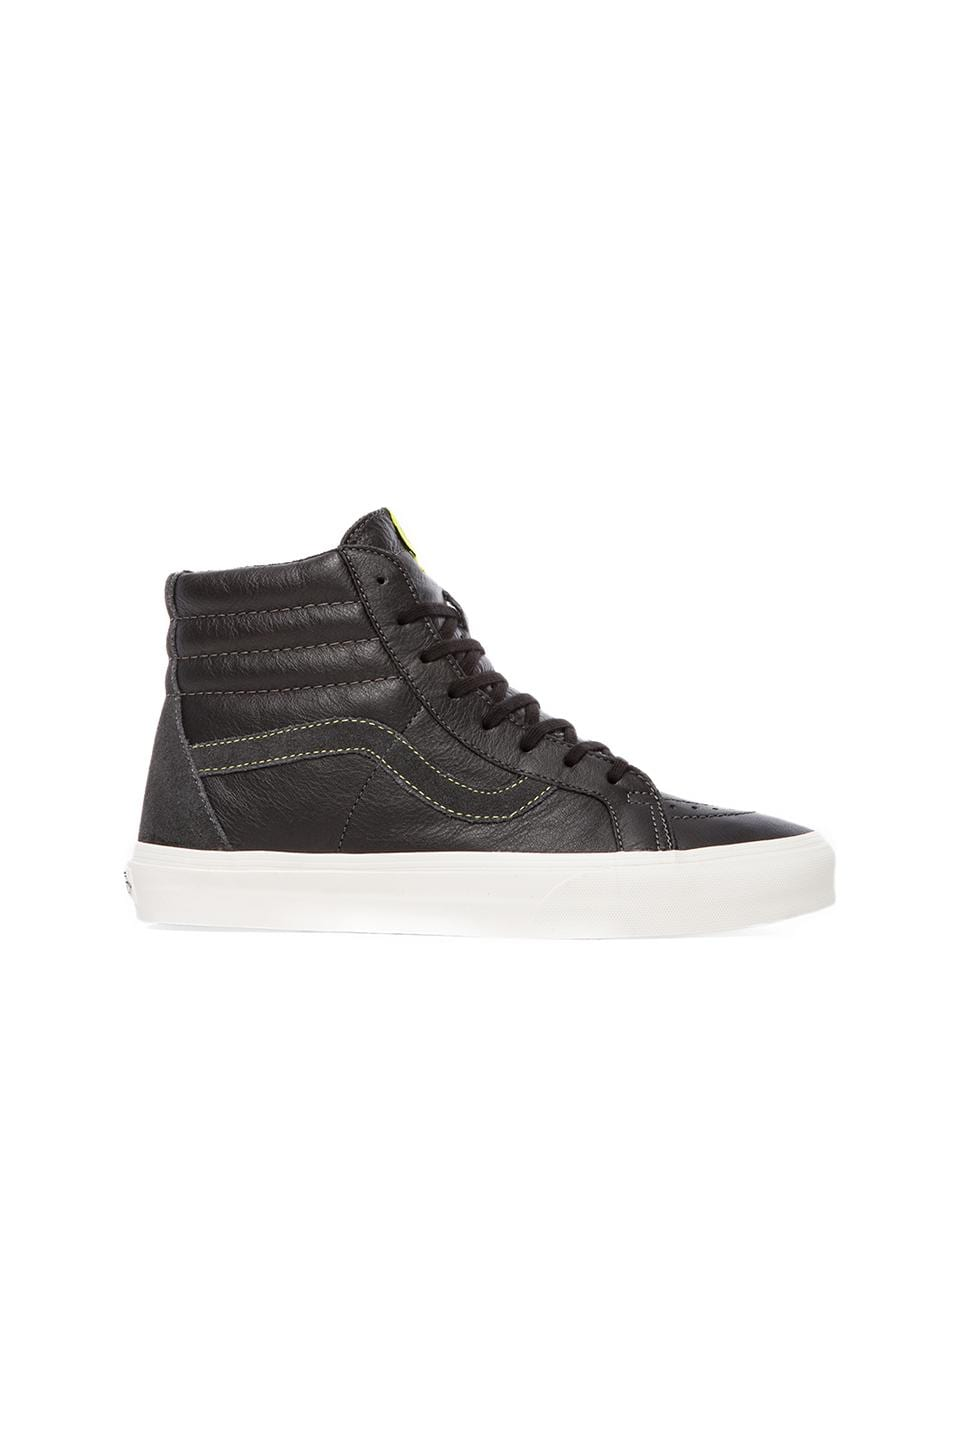 Vans California Sk8-Hi Reissue in Dark Shadow & Black